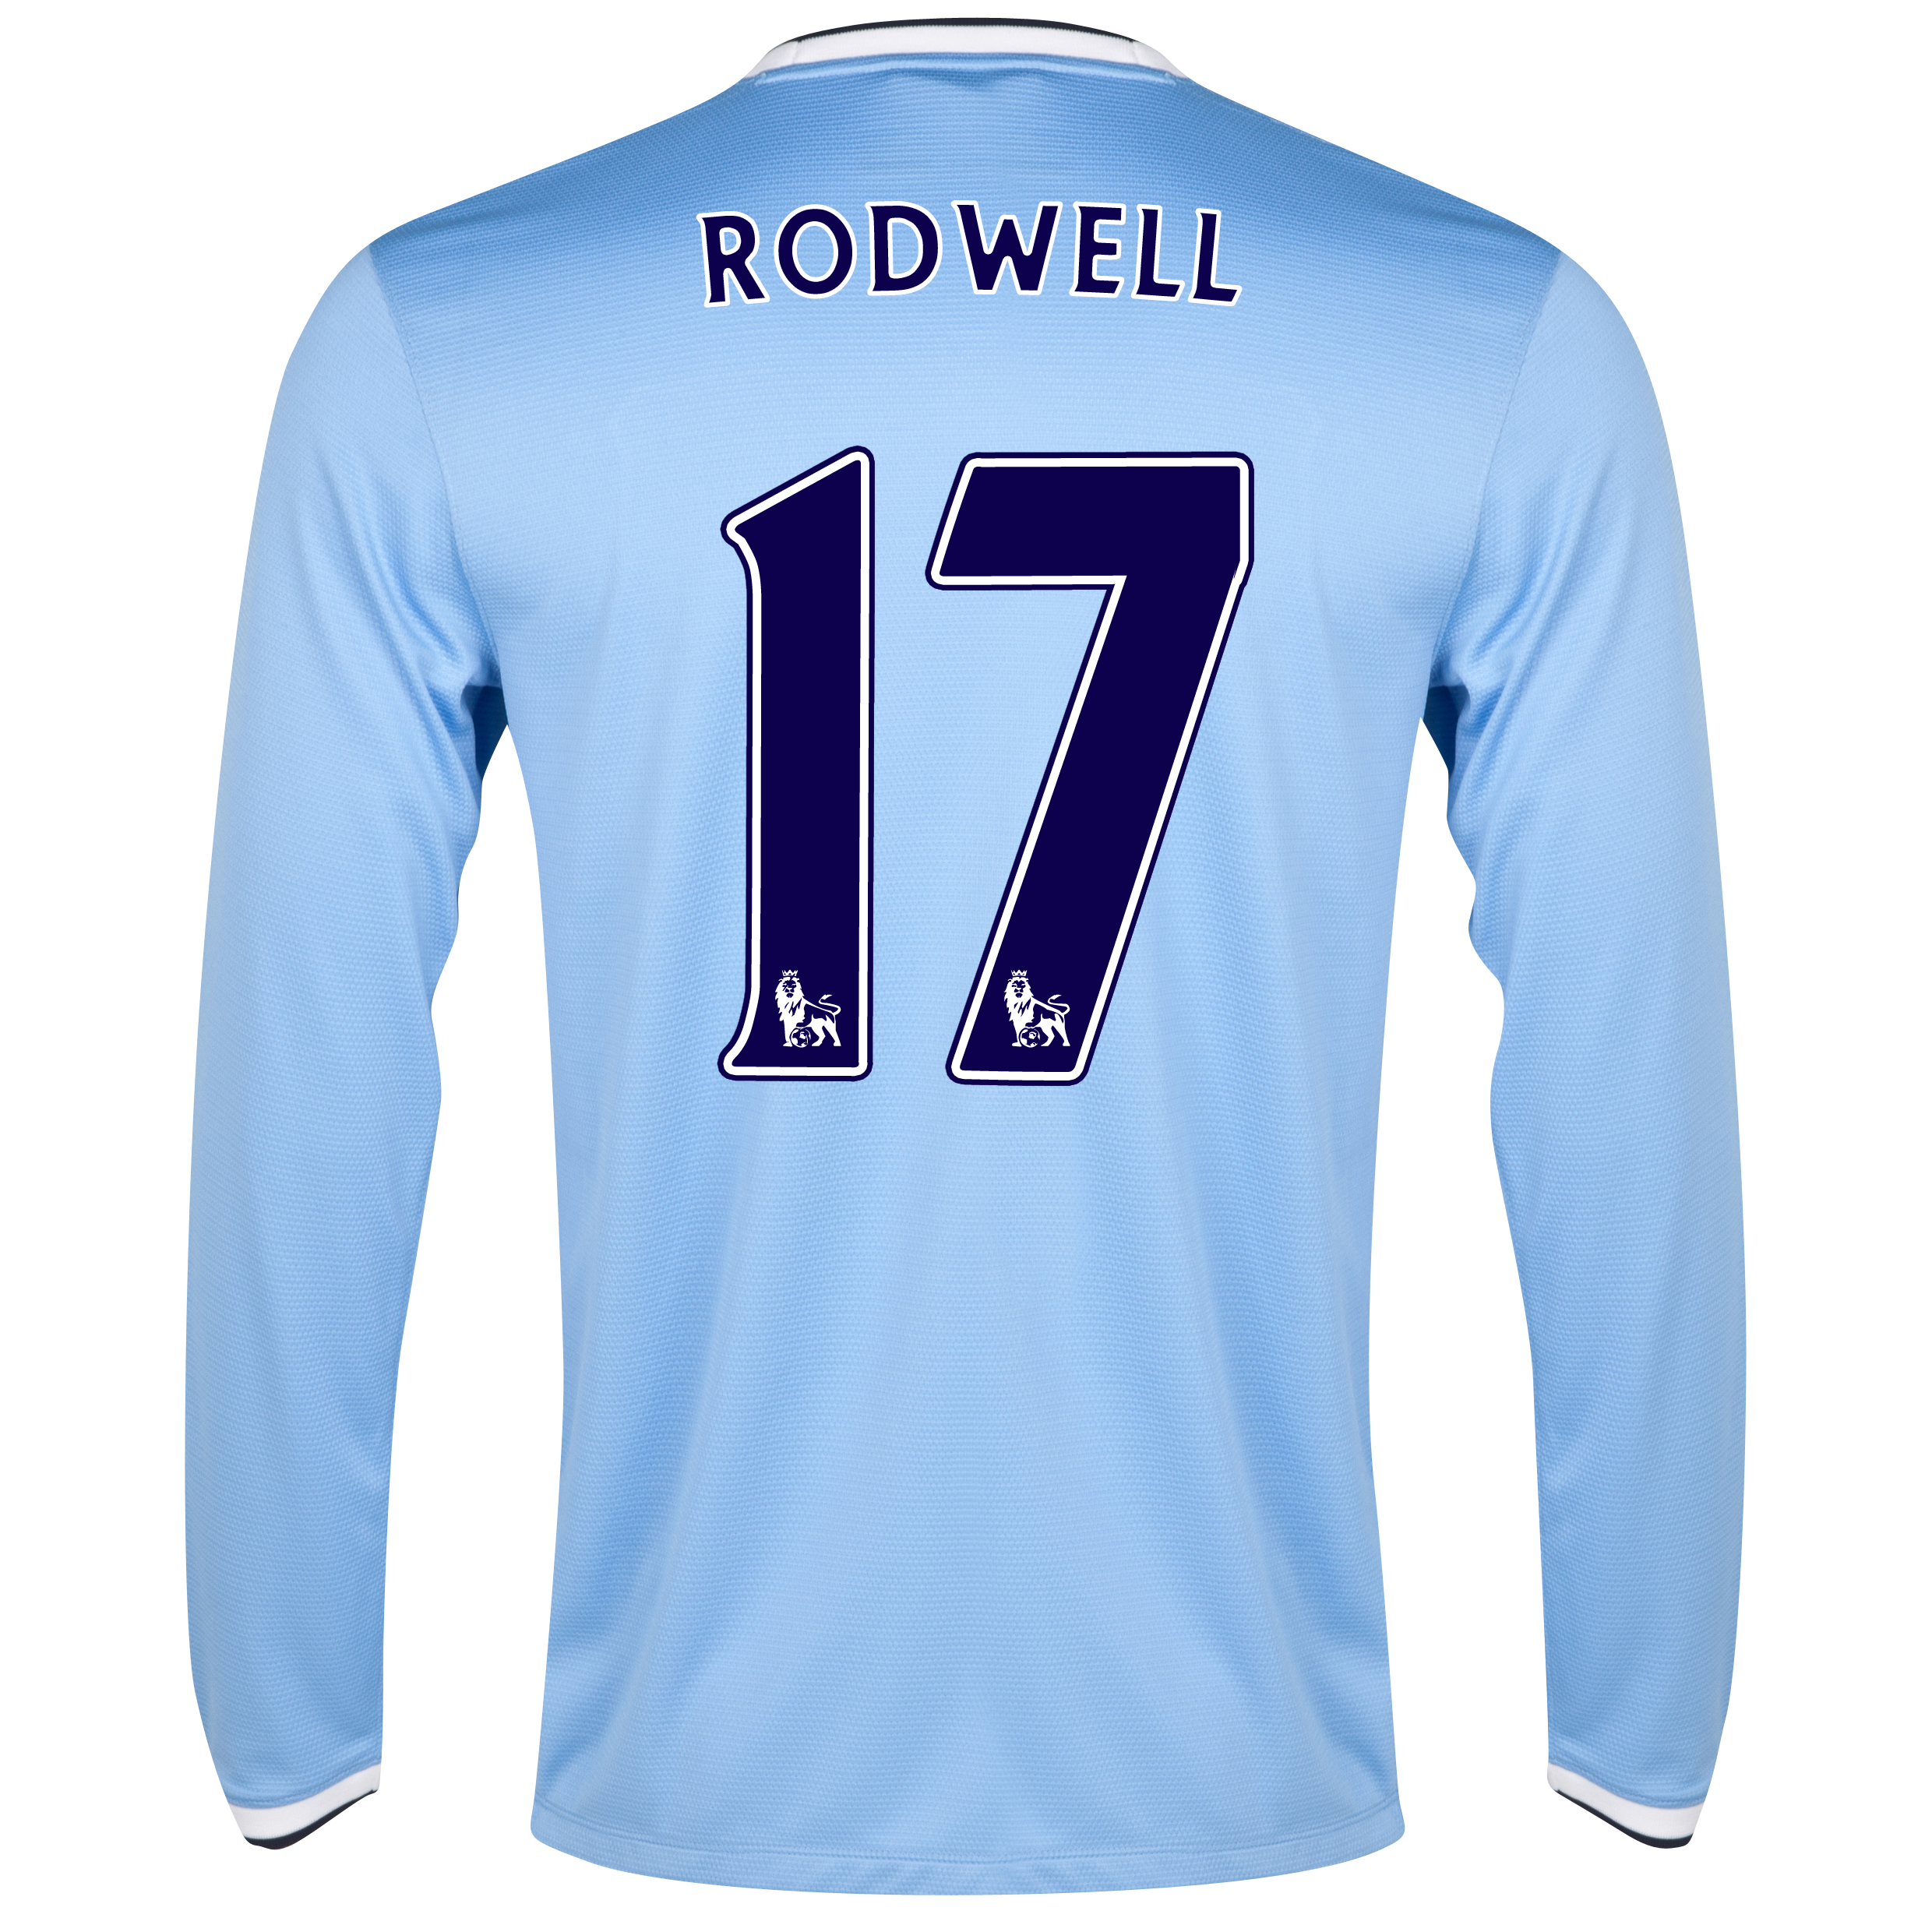 Manchester City Home Shirt 2013/14 - Long Sleeved - Junior with Rodwell 17 printing